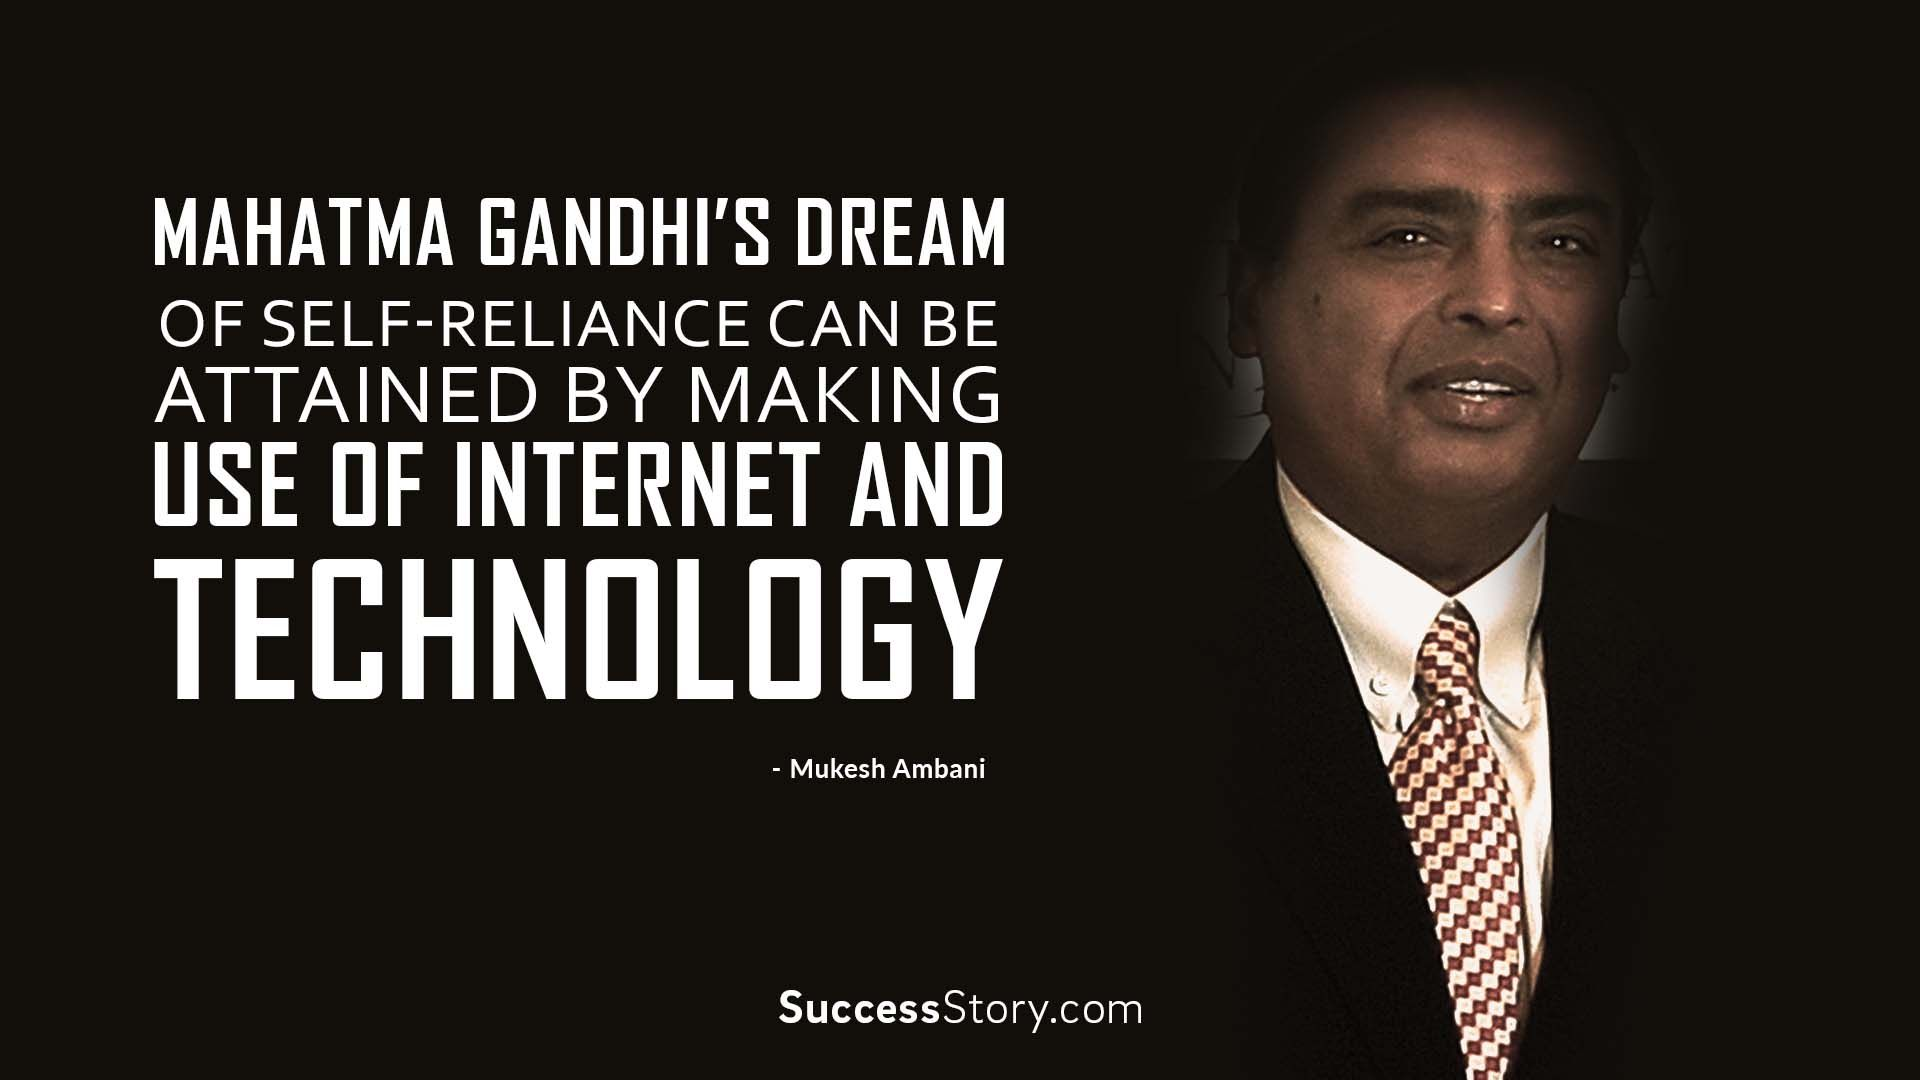 Internet Quotes Mahatma Gandhi's Dream Of Selfreliance Can Be Attainedmaking